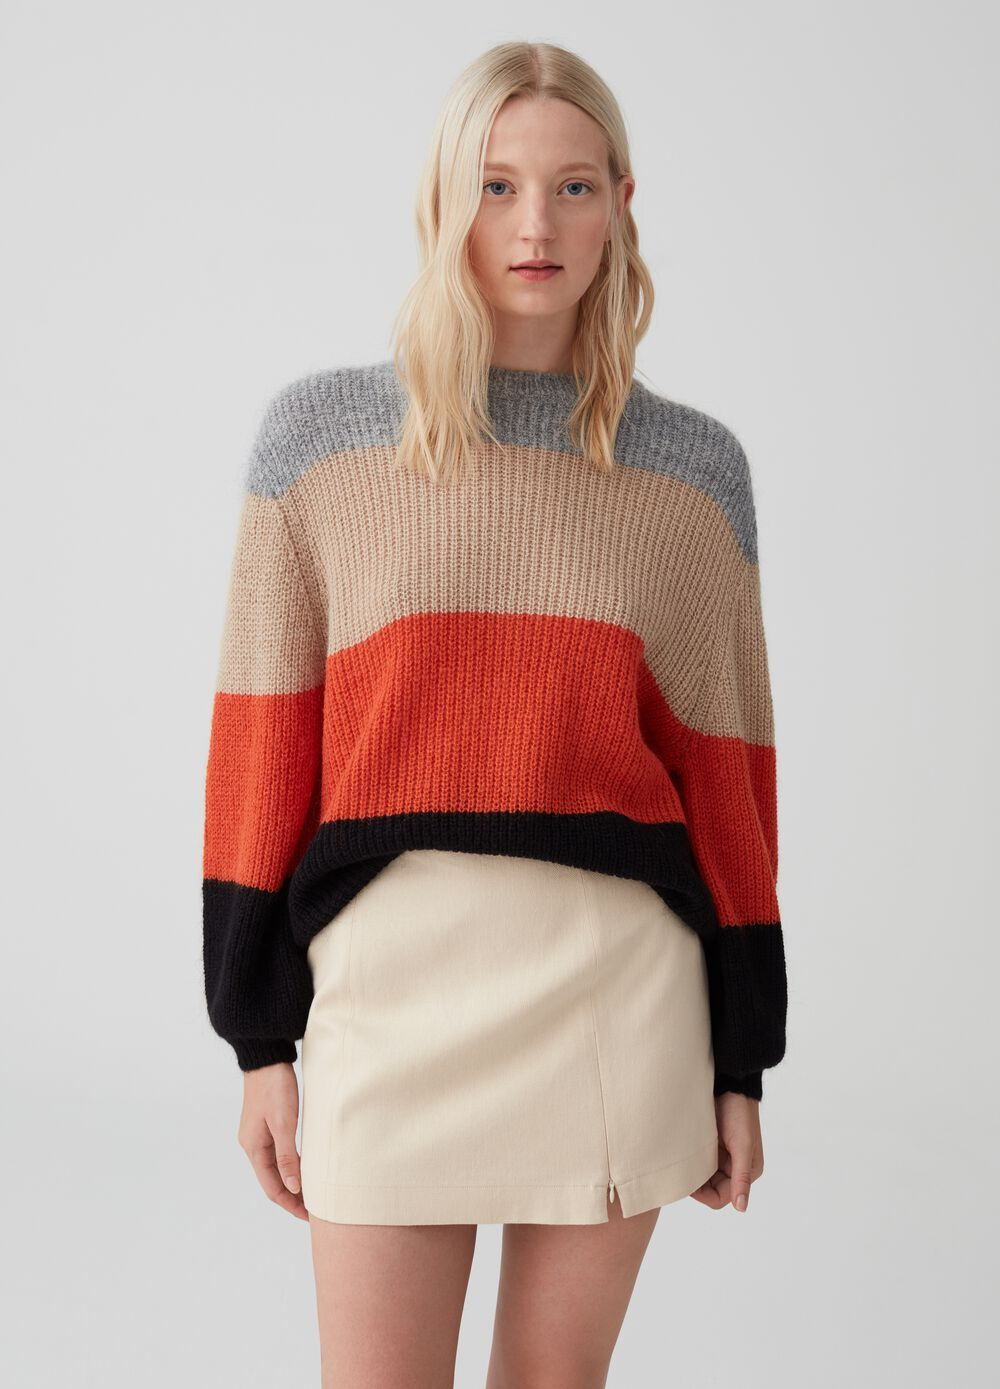 Colourblock pullover with striped pattern